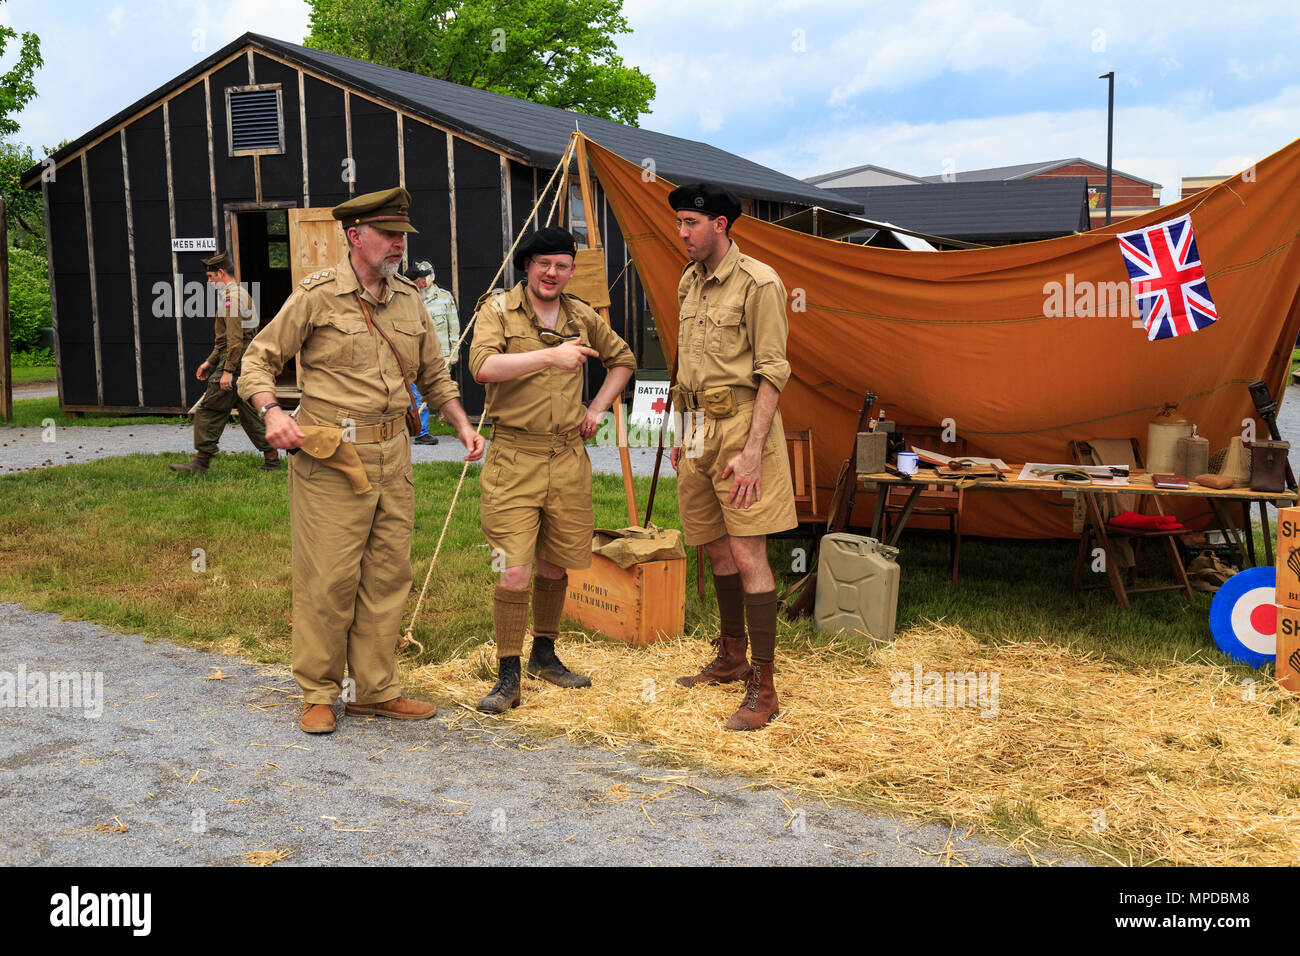 Carlisle, PA, USA - May 20, 2018: WWII British army soldier reenactors participating in the Army Heritage Days event at the U.S. Army Heritage and Edu - Stock Image